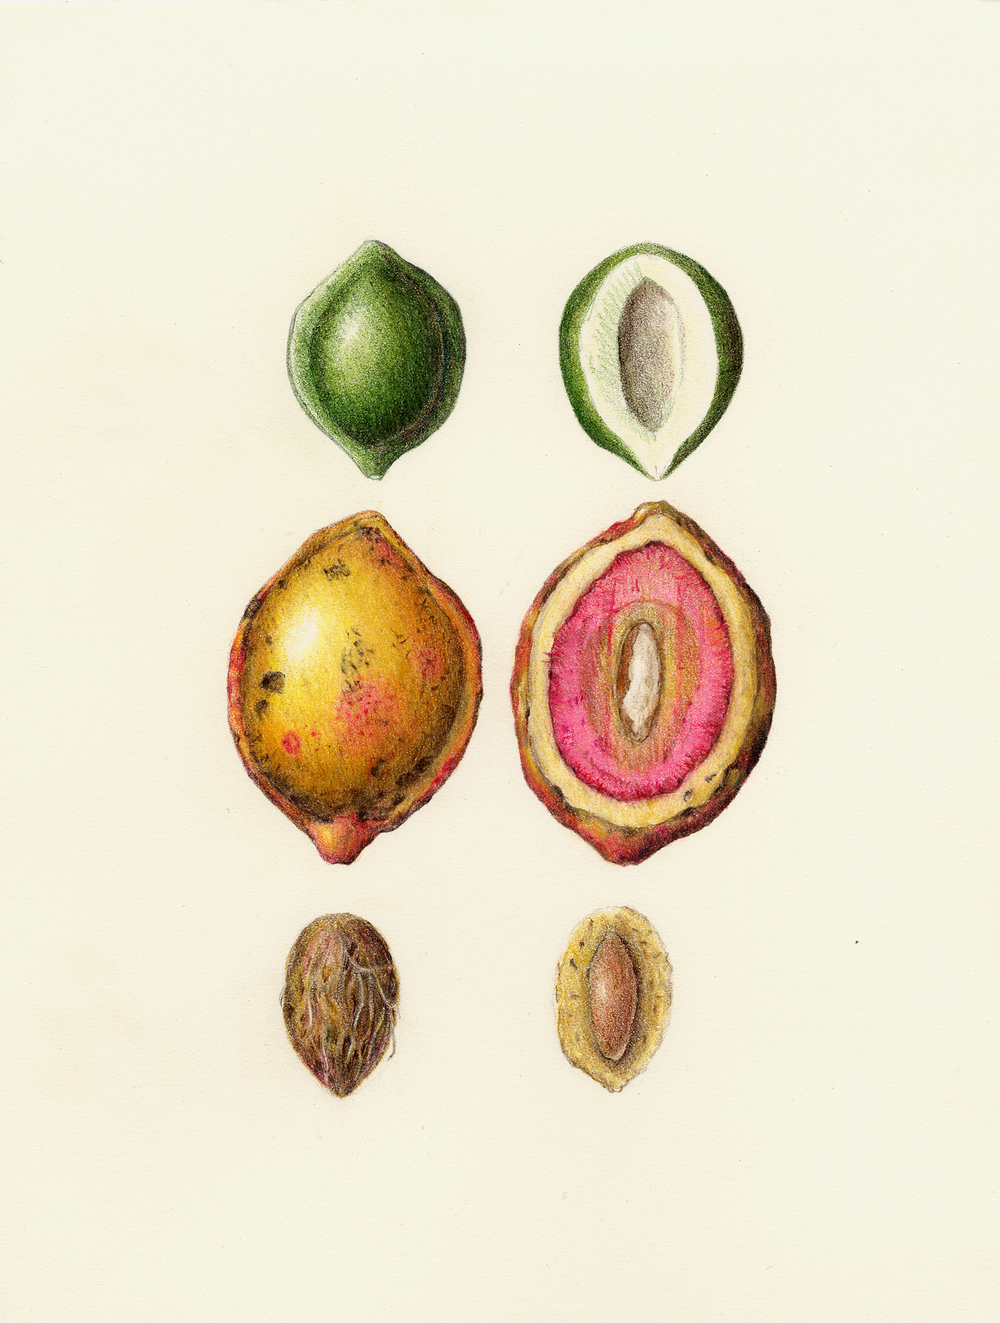 Tropical Almond Fruit - Terminalia catappa